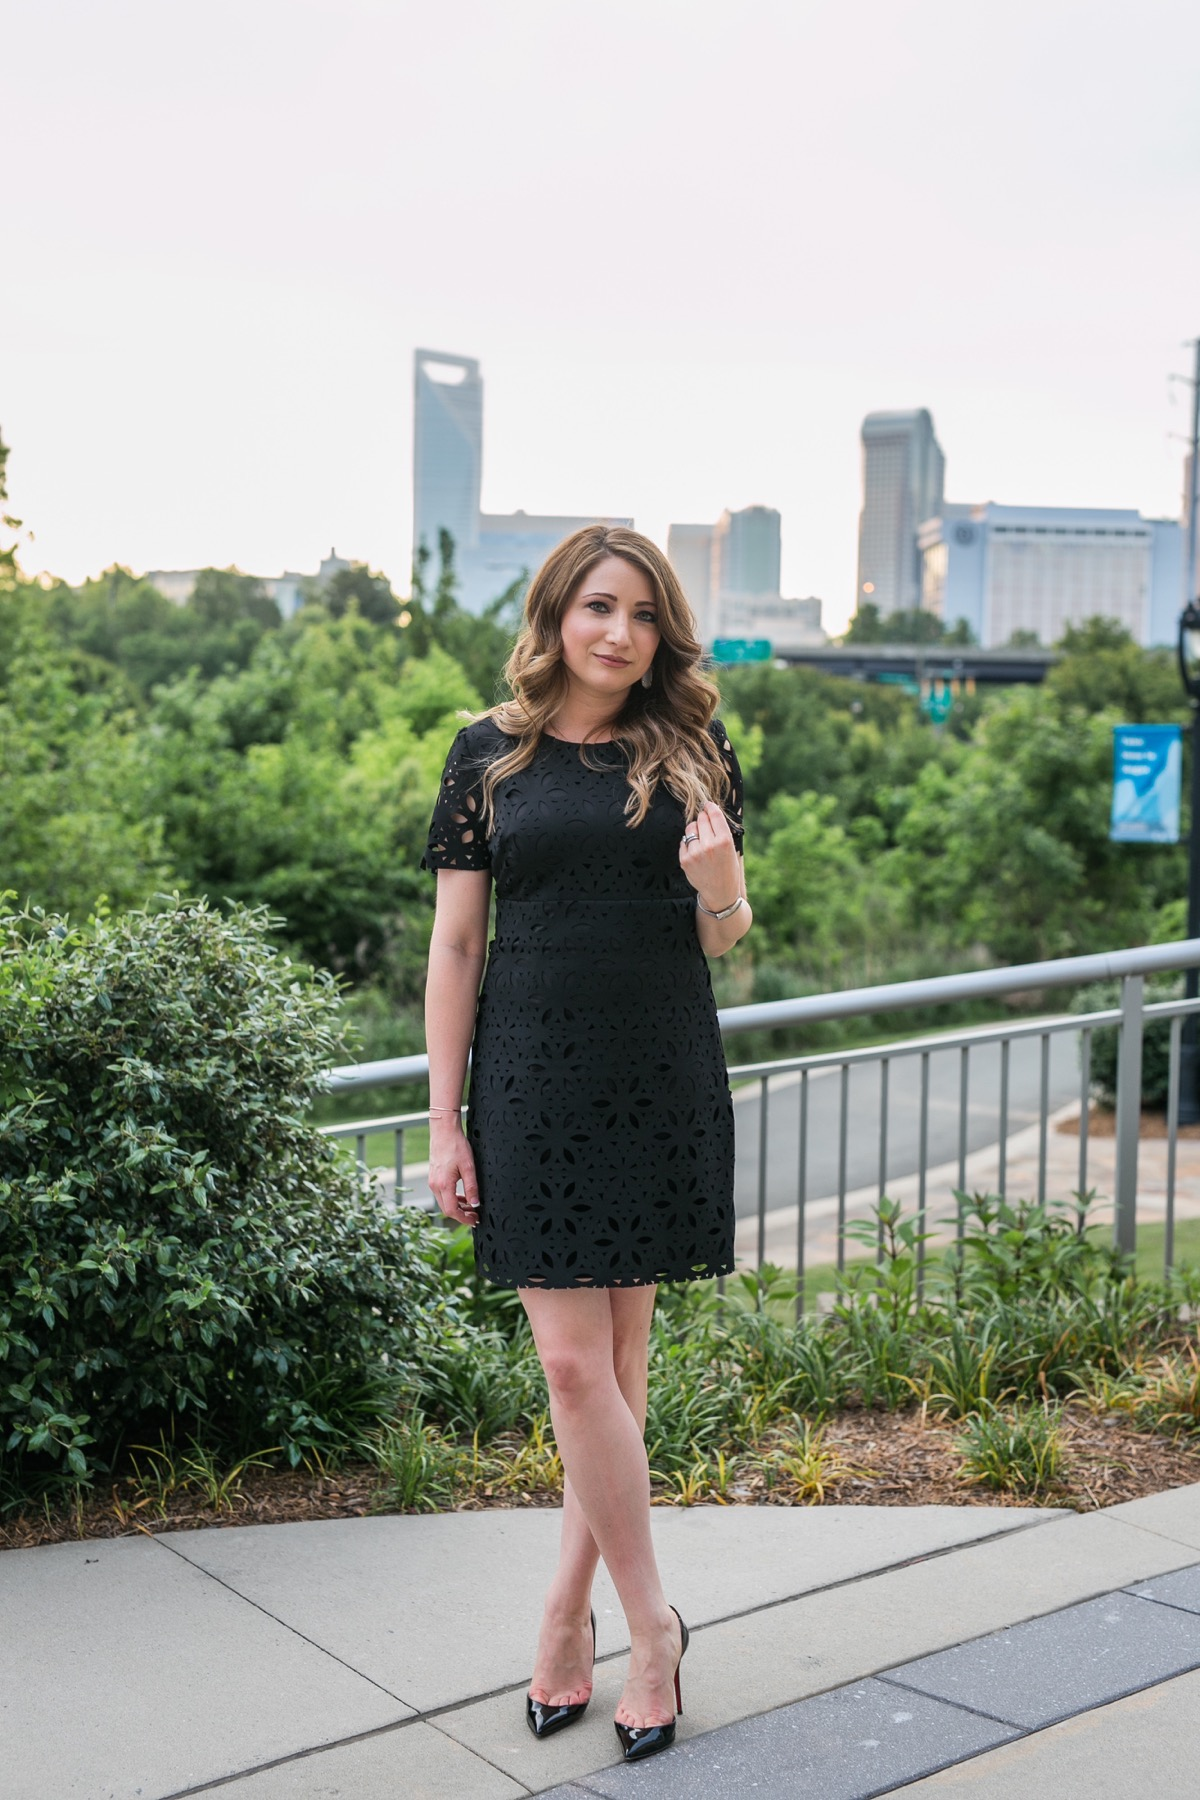 Vivace Charlotte Trina Turk Little Black Dress 1